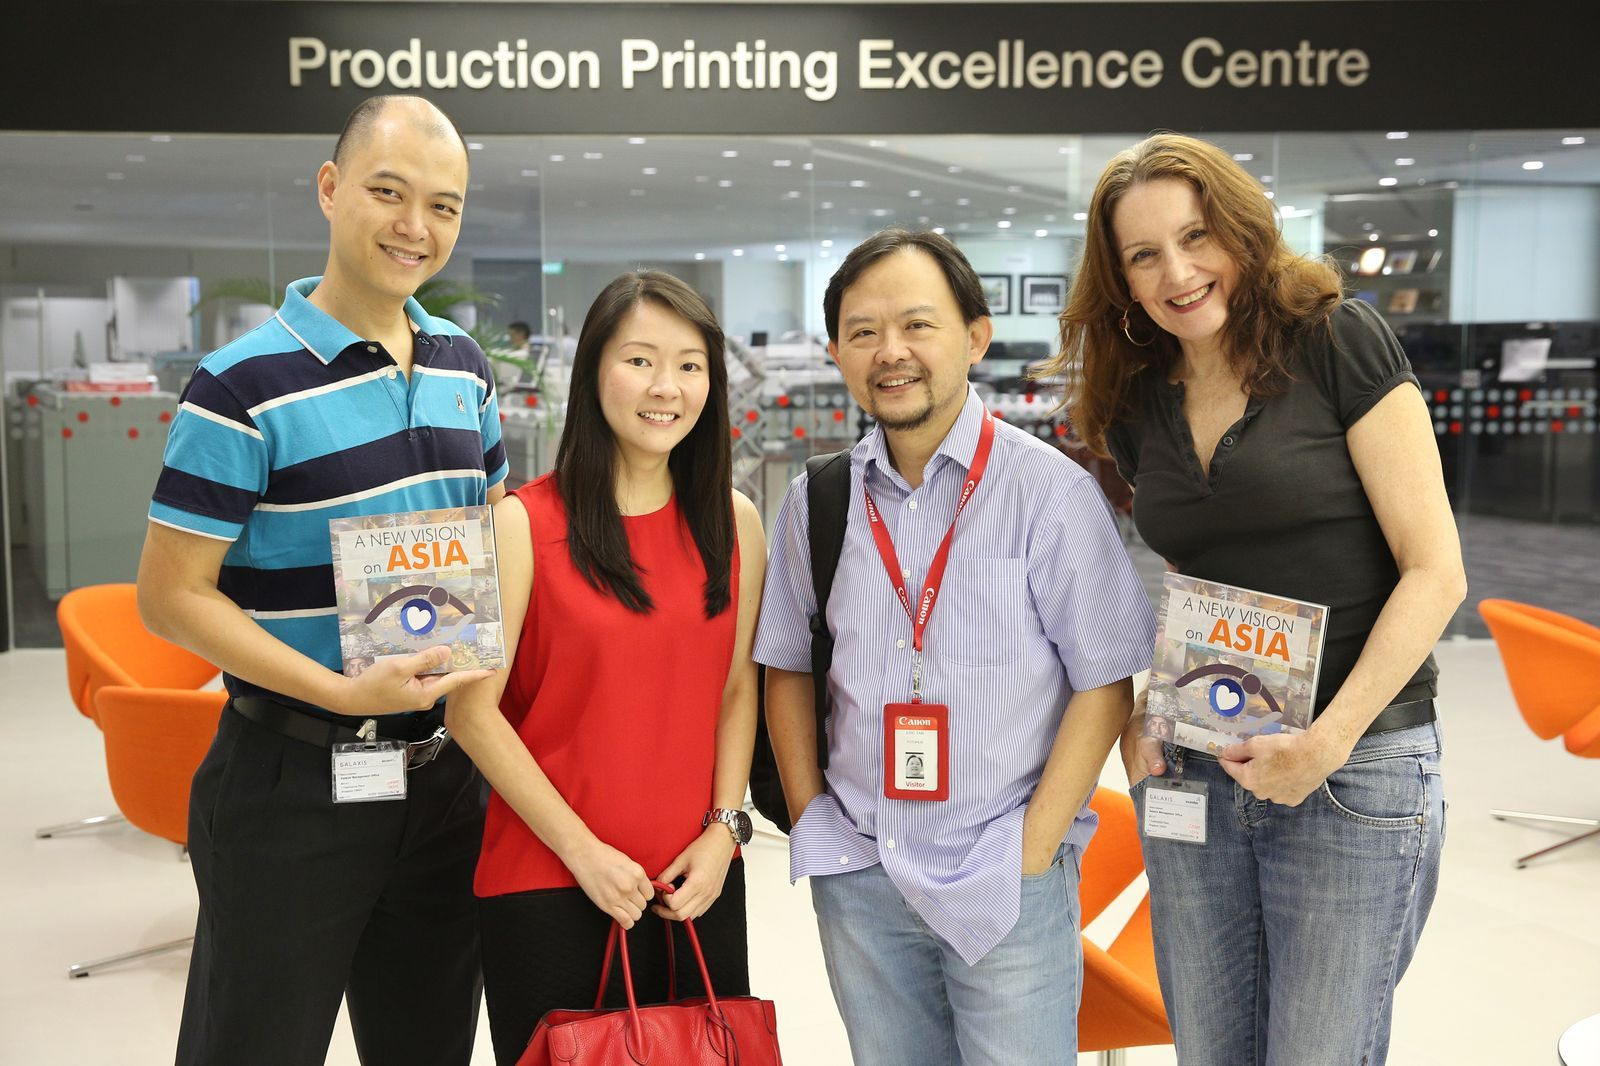 Irving Neil Kwok, Joey Ng, Eric Tan and Carolyn Strover